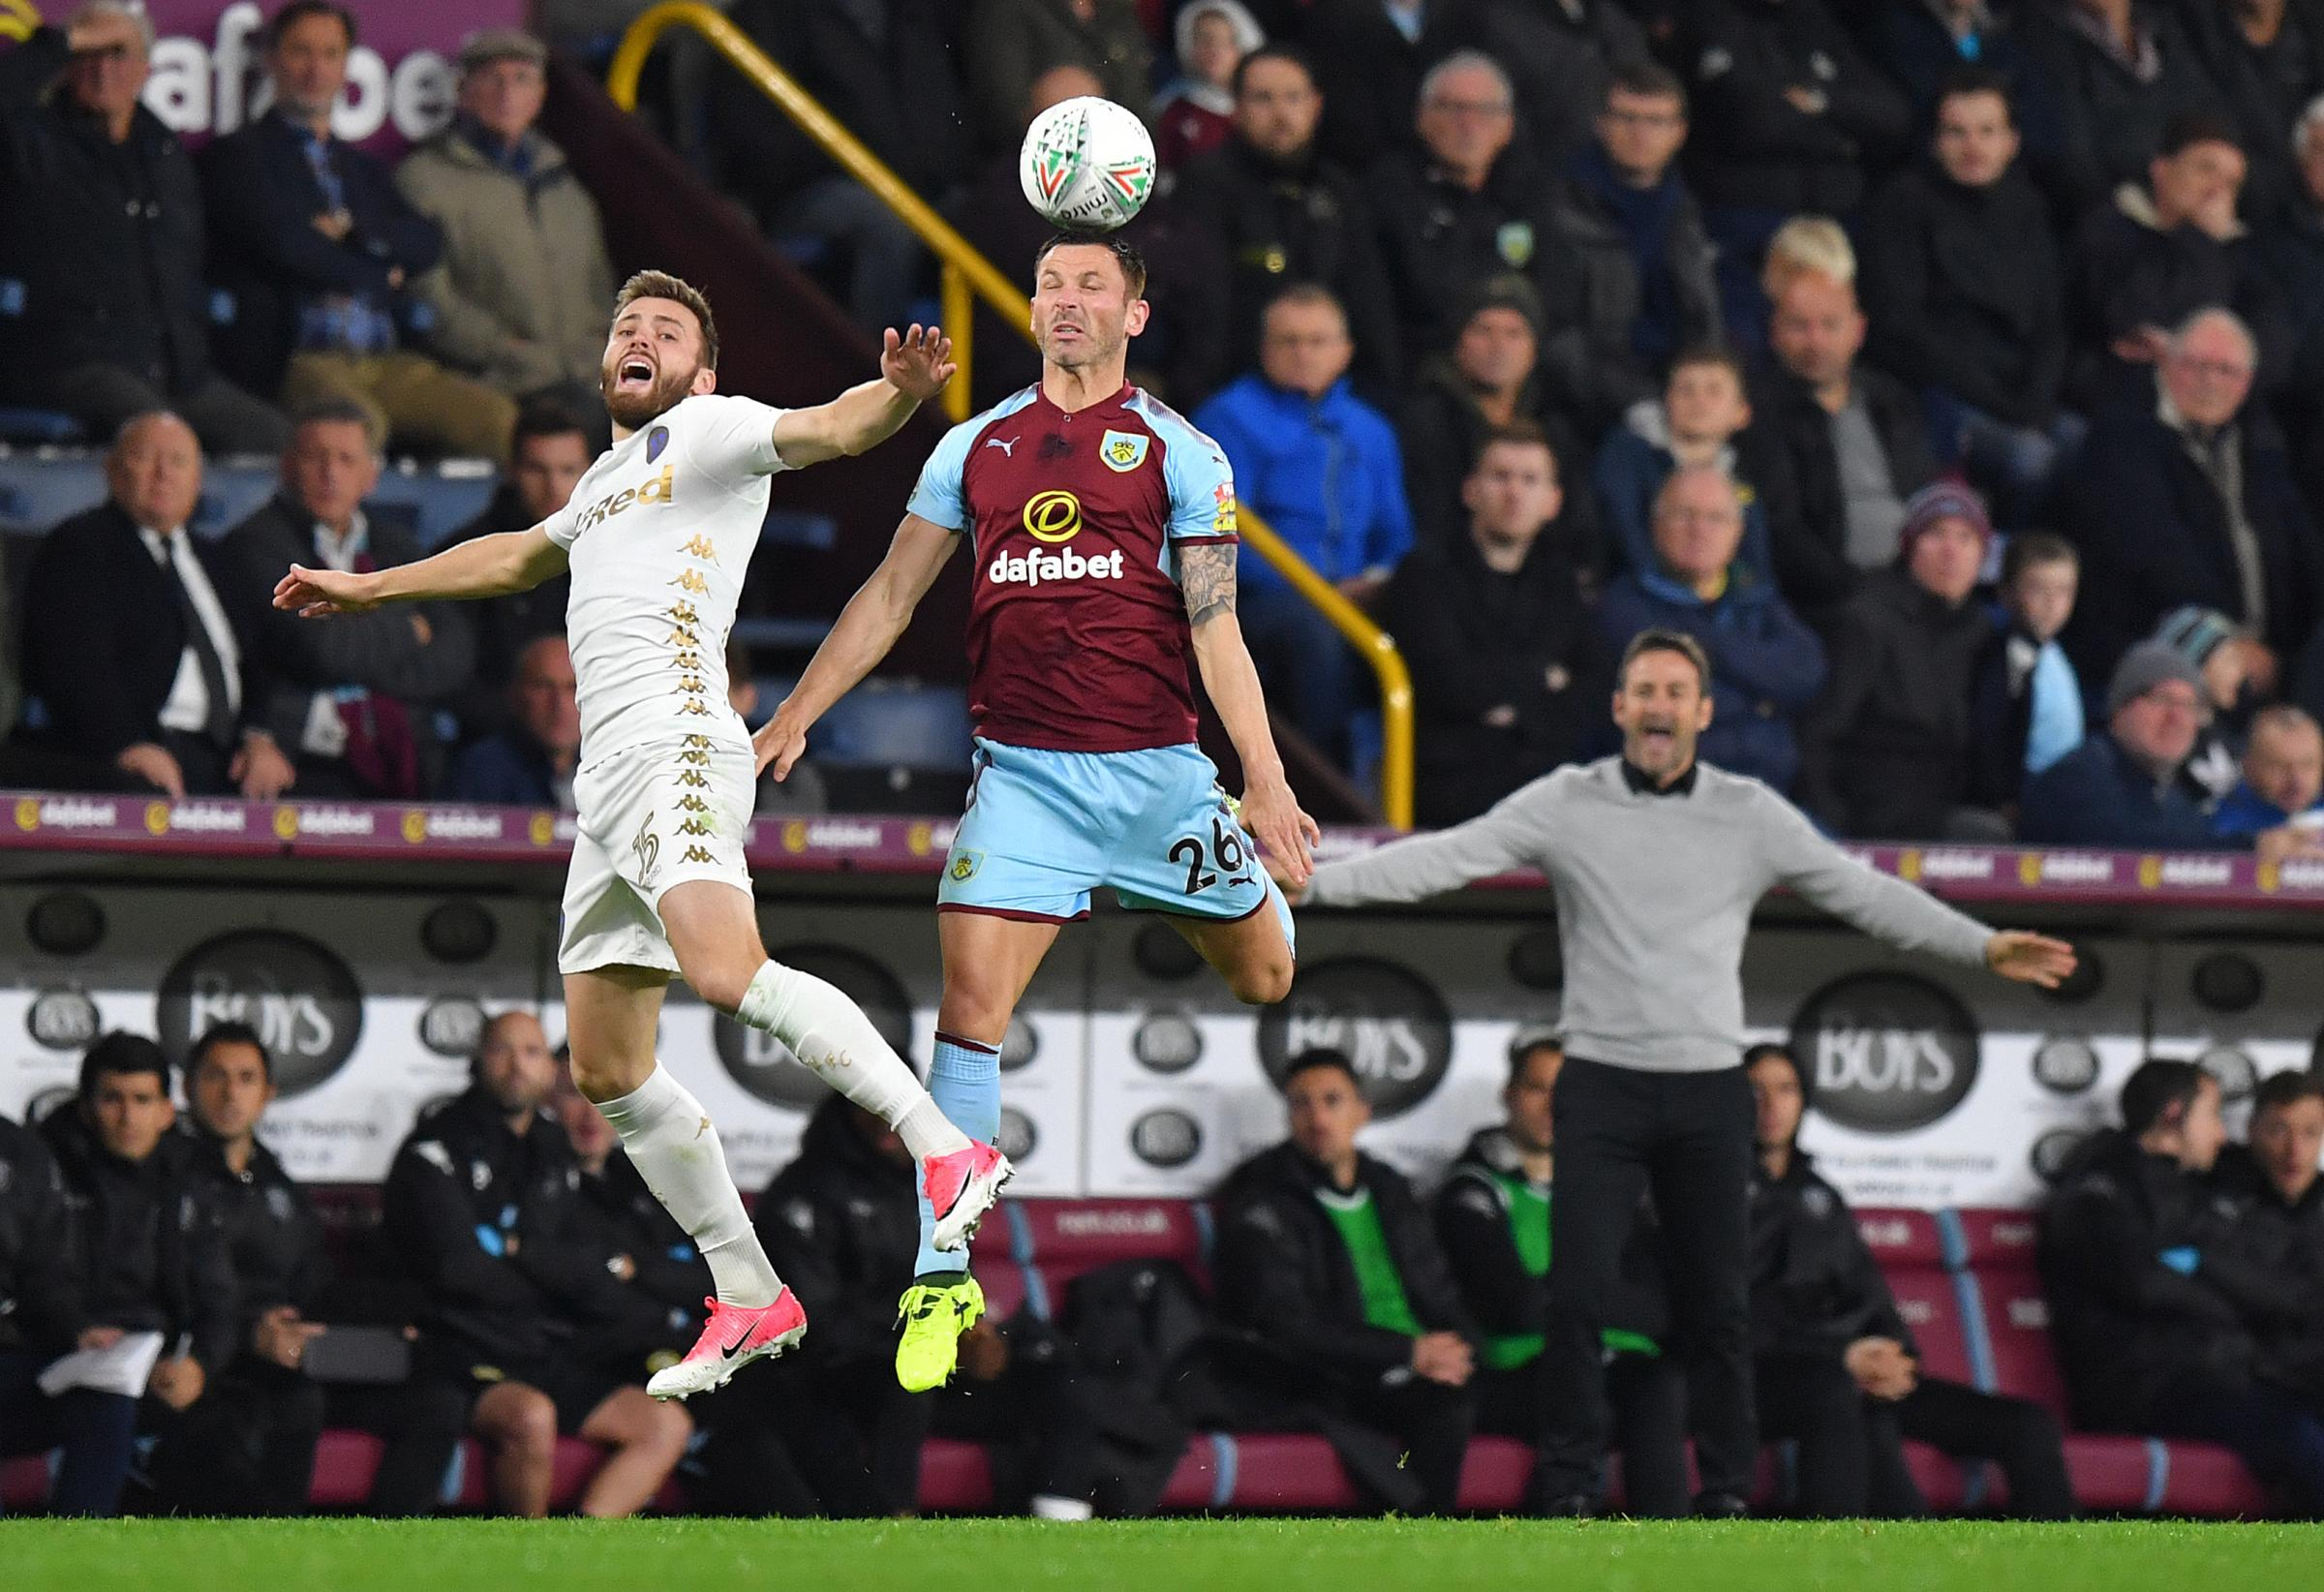 Phil Bardsley is keen to press his claims for a starting place at Burnley under Sean Dyche